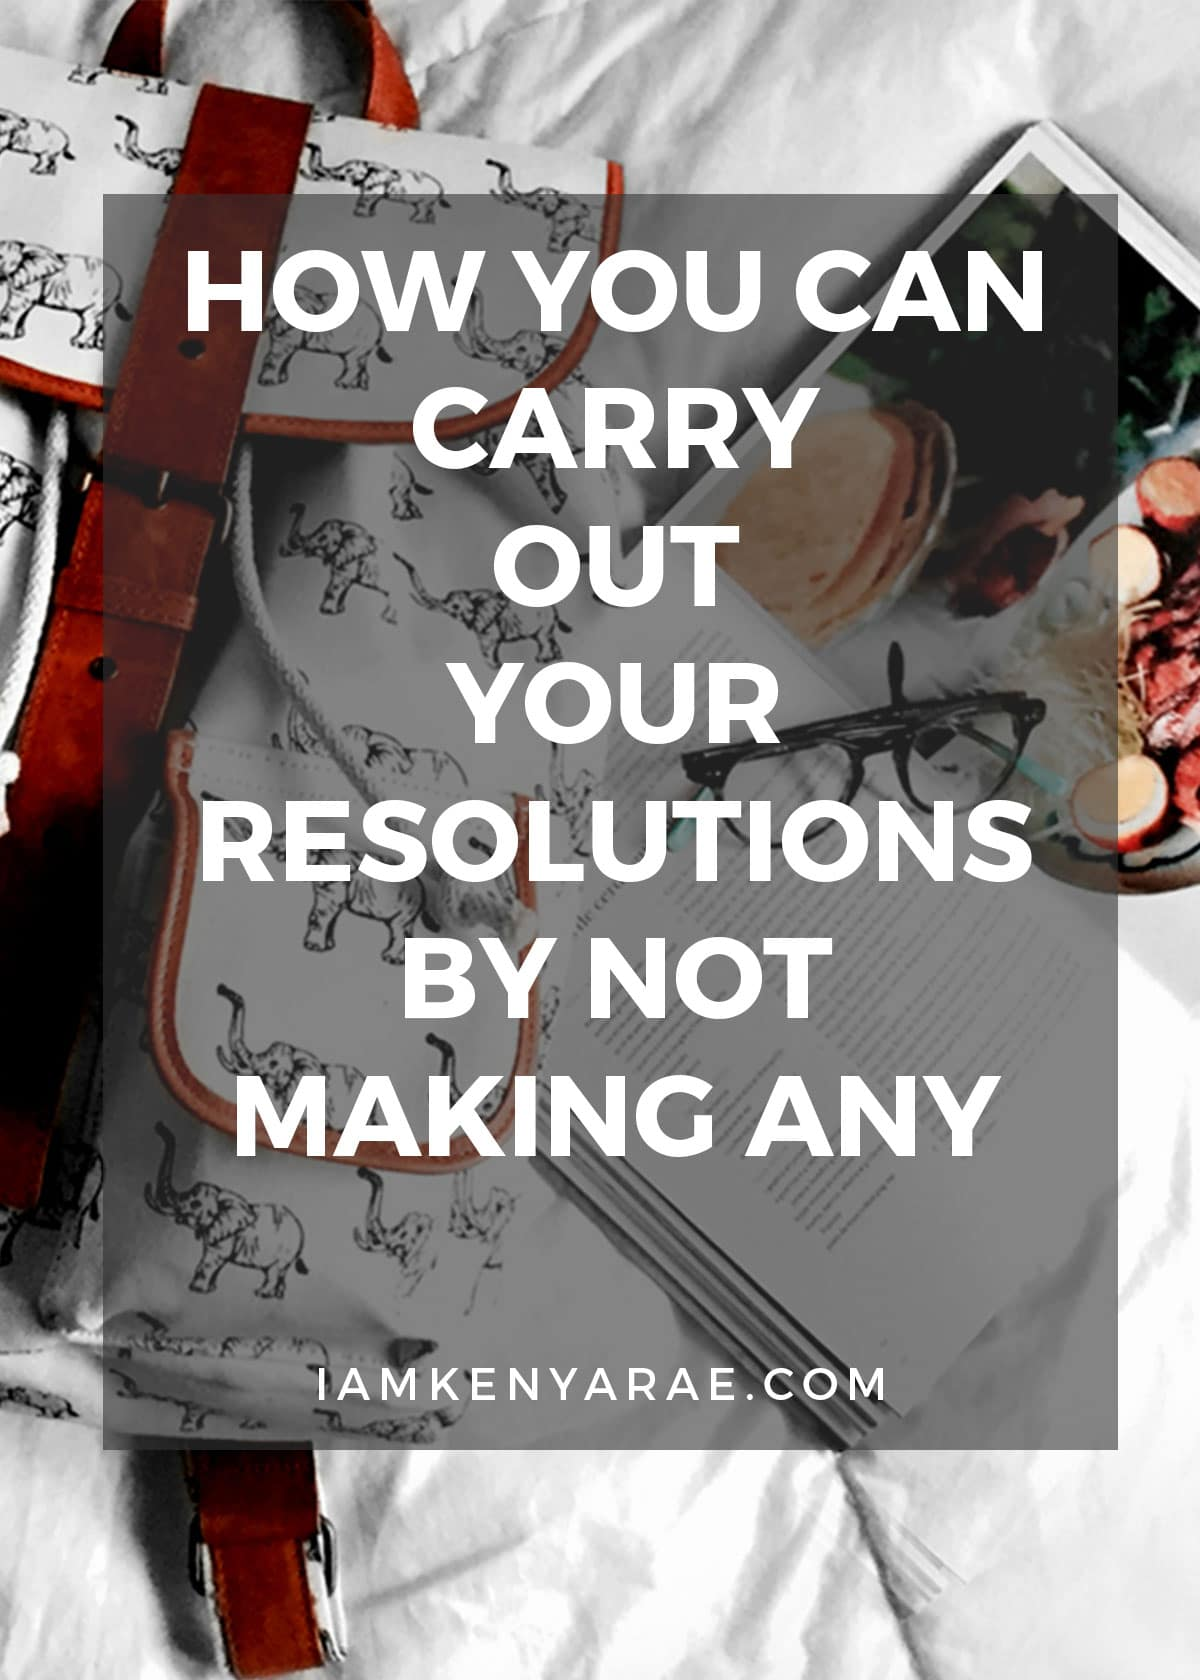 HOW YOU CAN CARRY OUT YOUR RESOLUTIONS FROM THE TOP OF THE YEAR